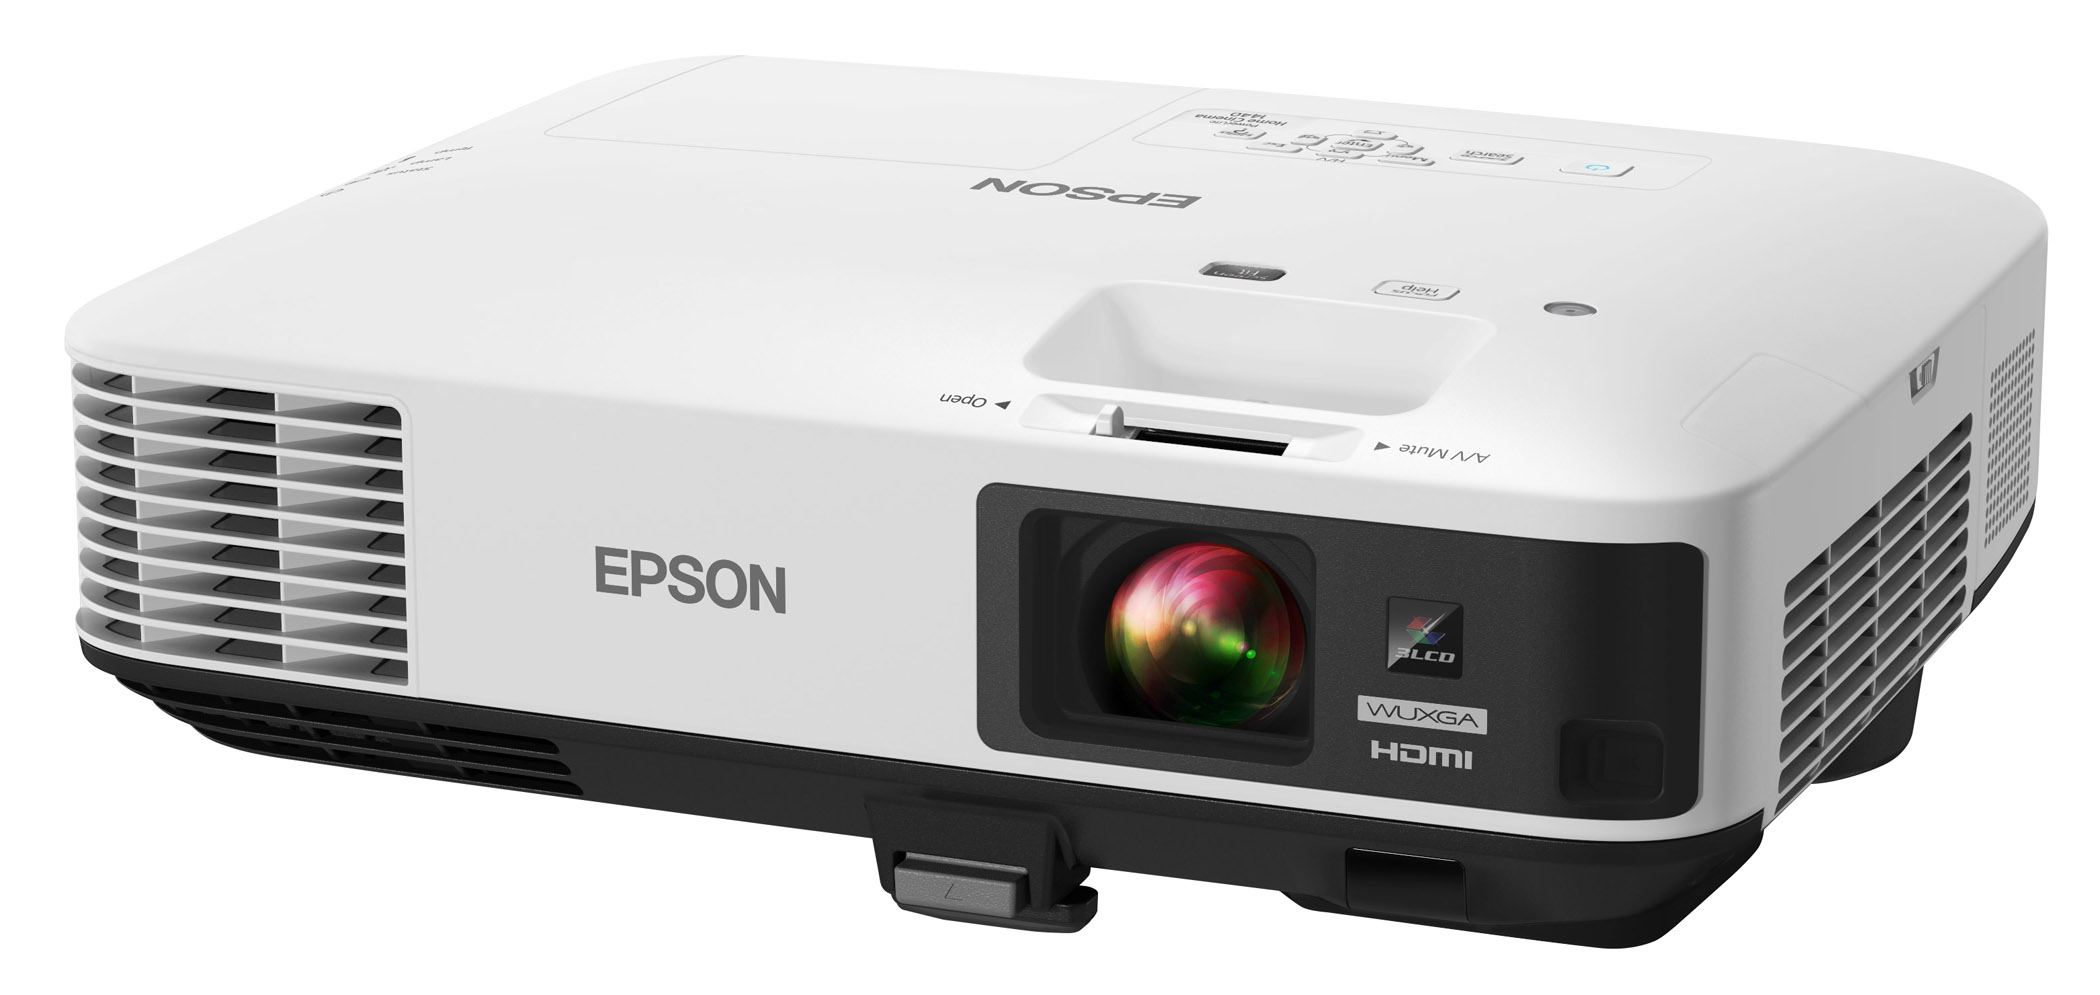 Epson Ultra Bright Projector at Best Buy